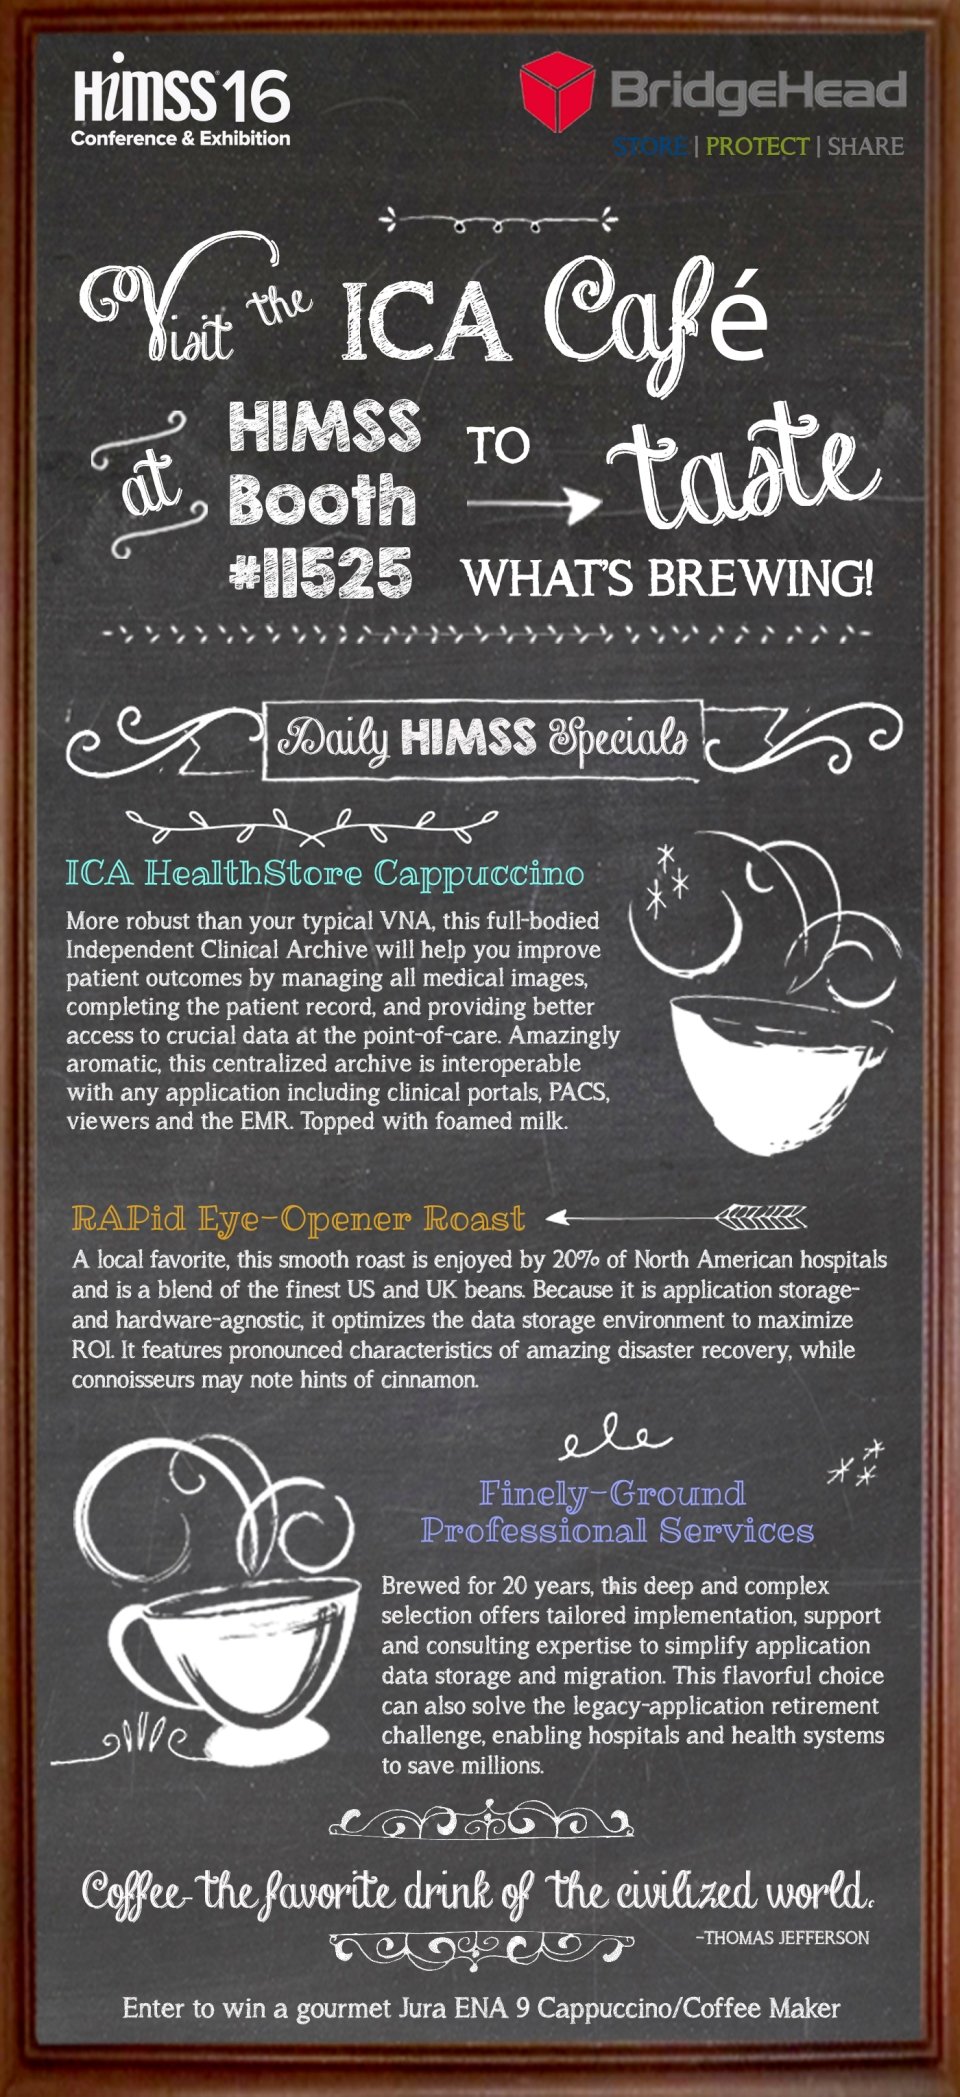 Bridgehead_HIMSS16.v2.1-20-16